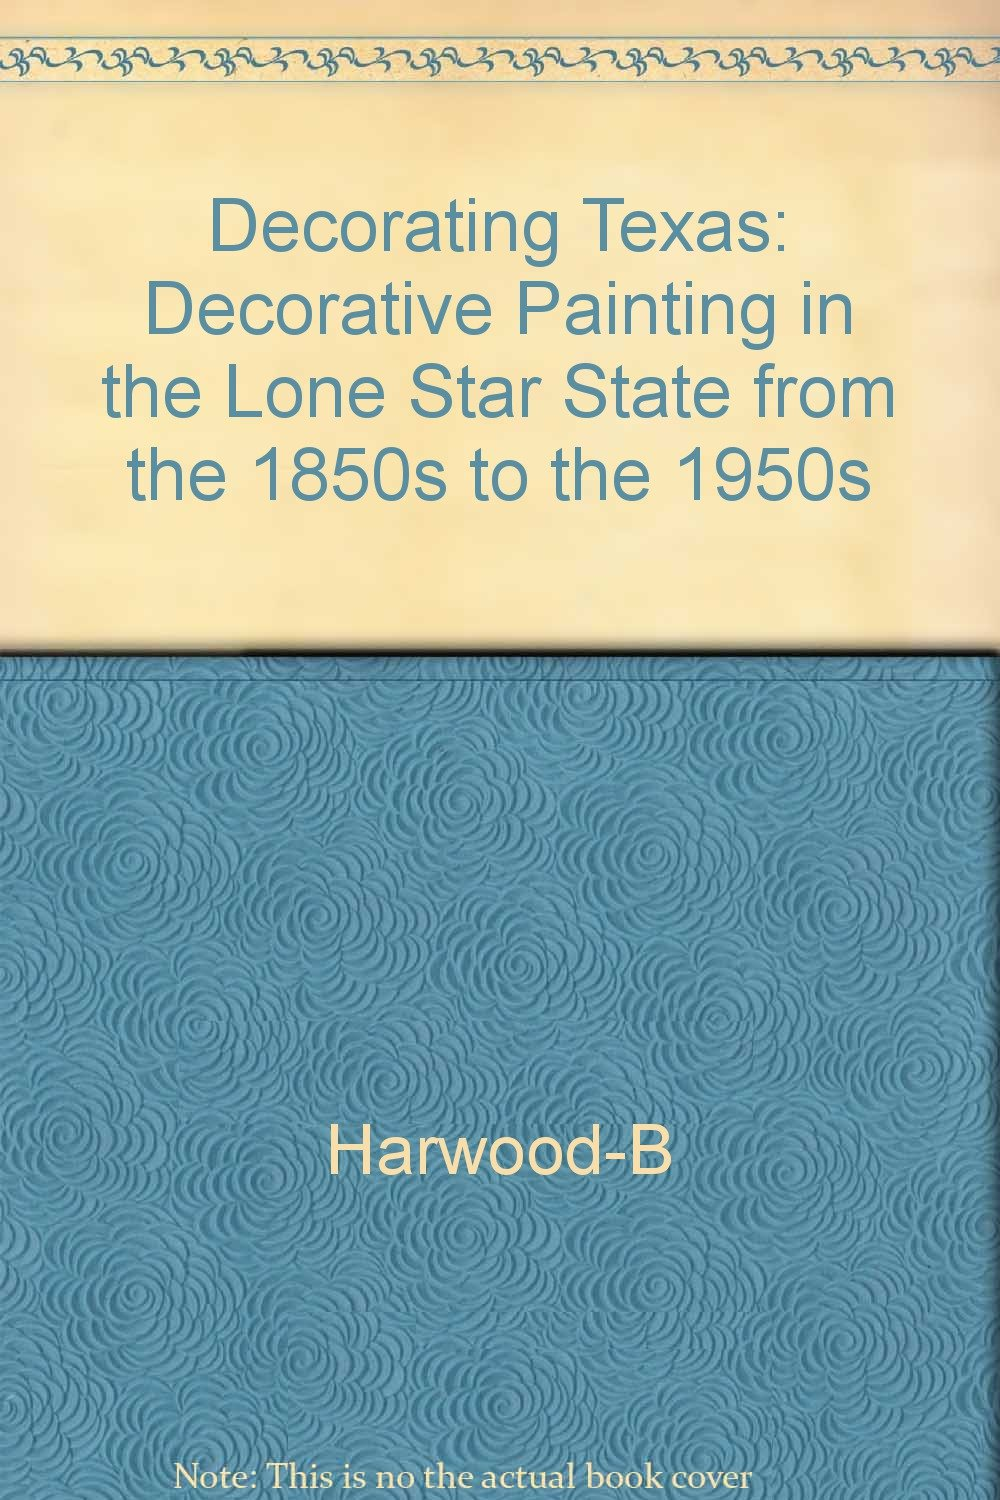 Decorating Texas: Decorative Painting in the Lone Star State from the 1850s to the 1950s